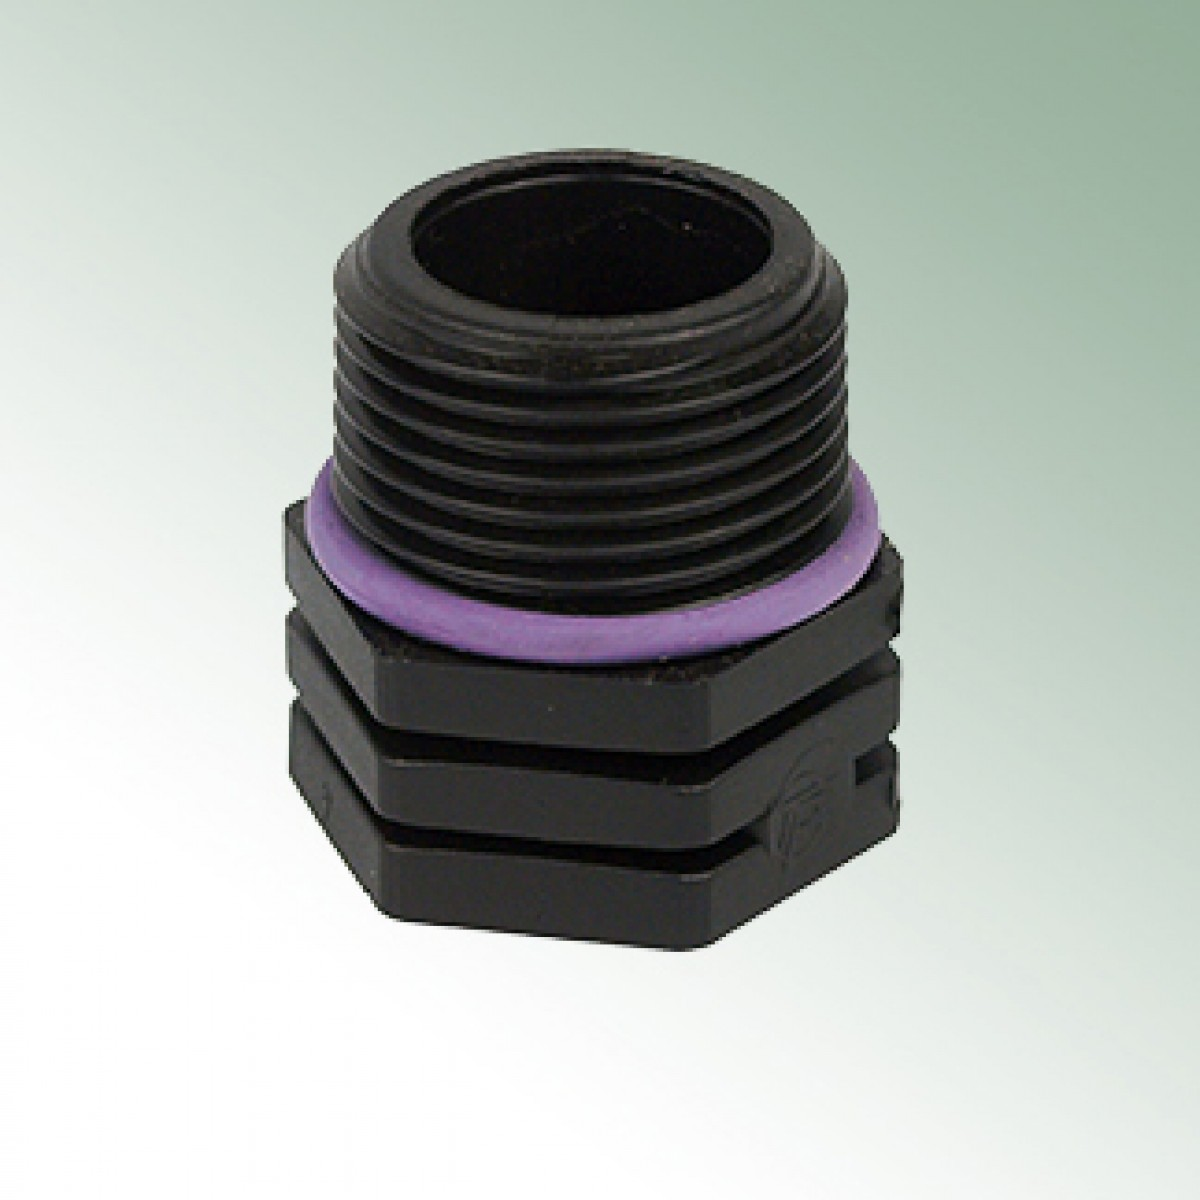 End cap male thread plastic with o ring fittings